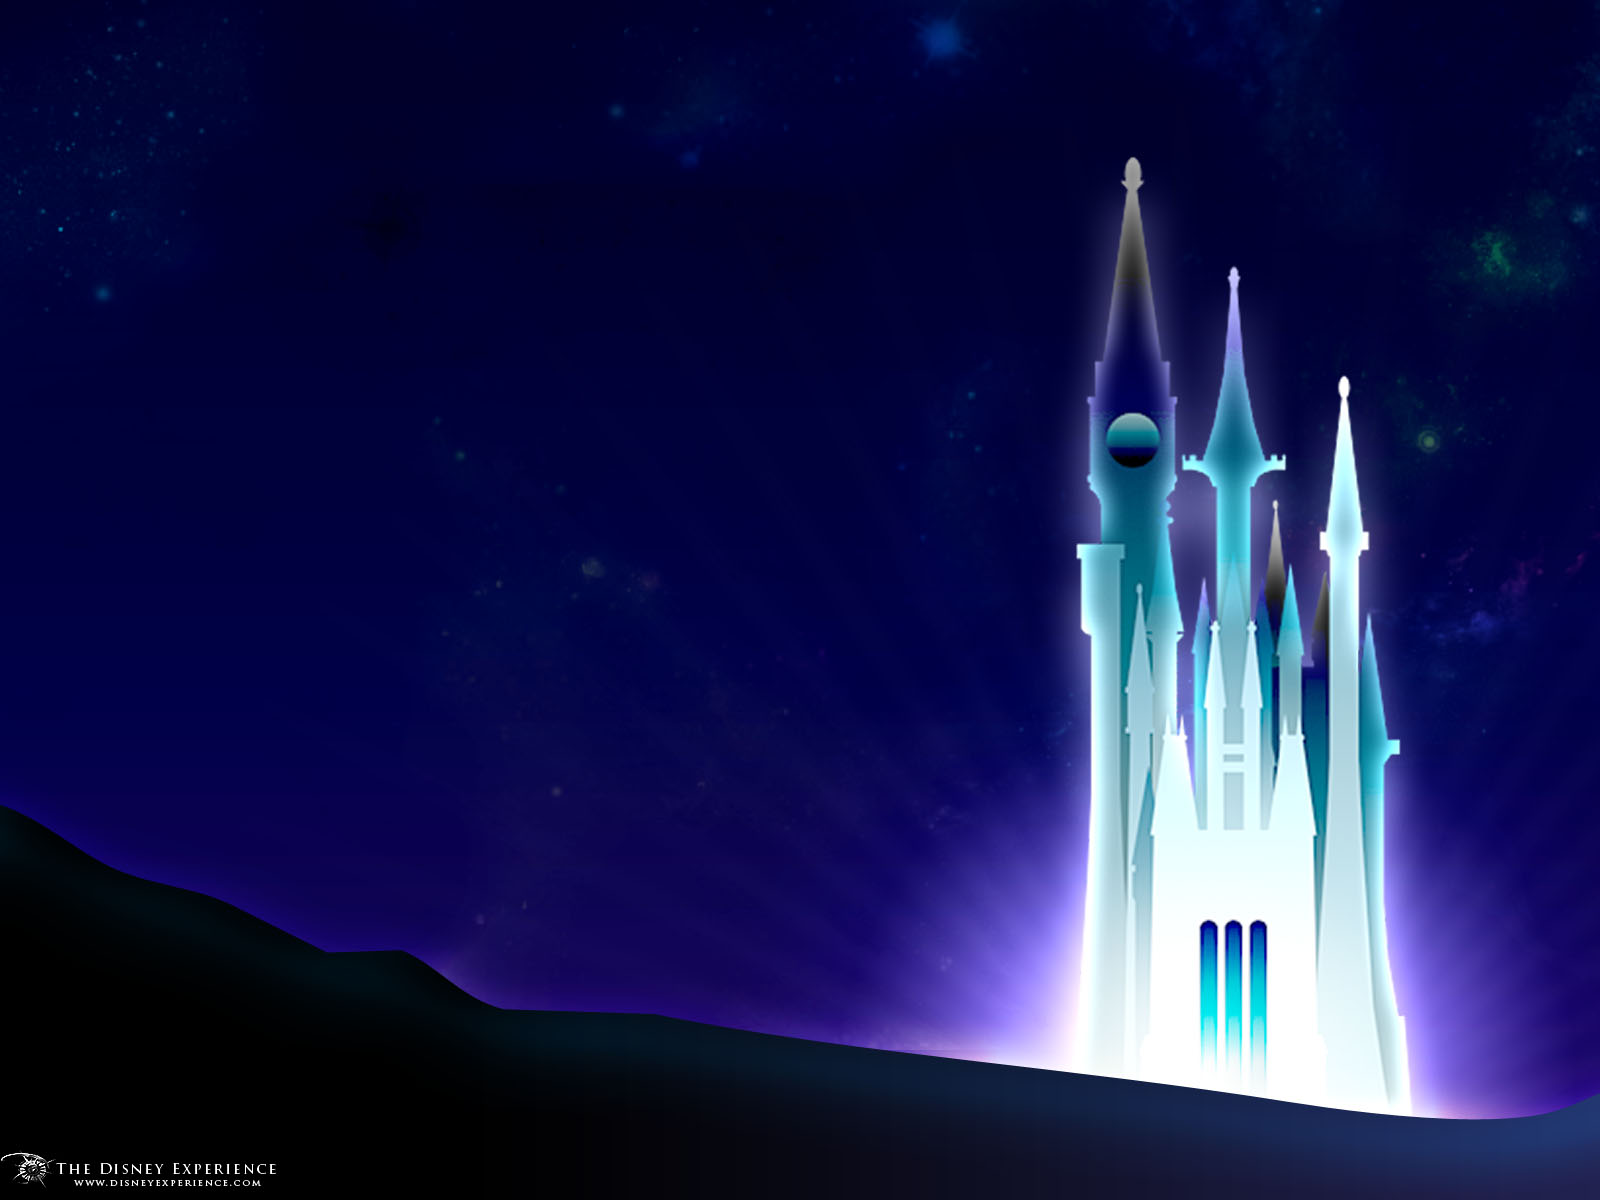 Christmas Animated Wallpaper For Mac Wallpapers Page 1